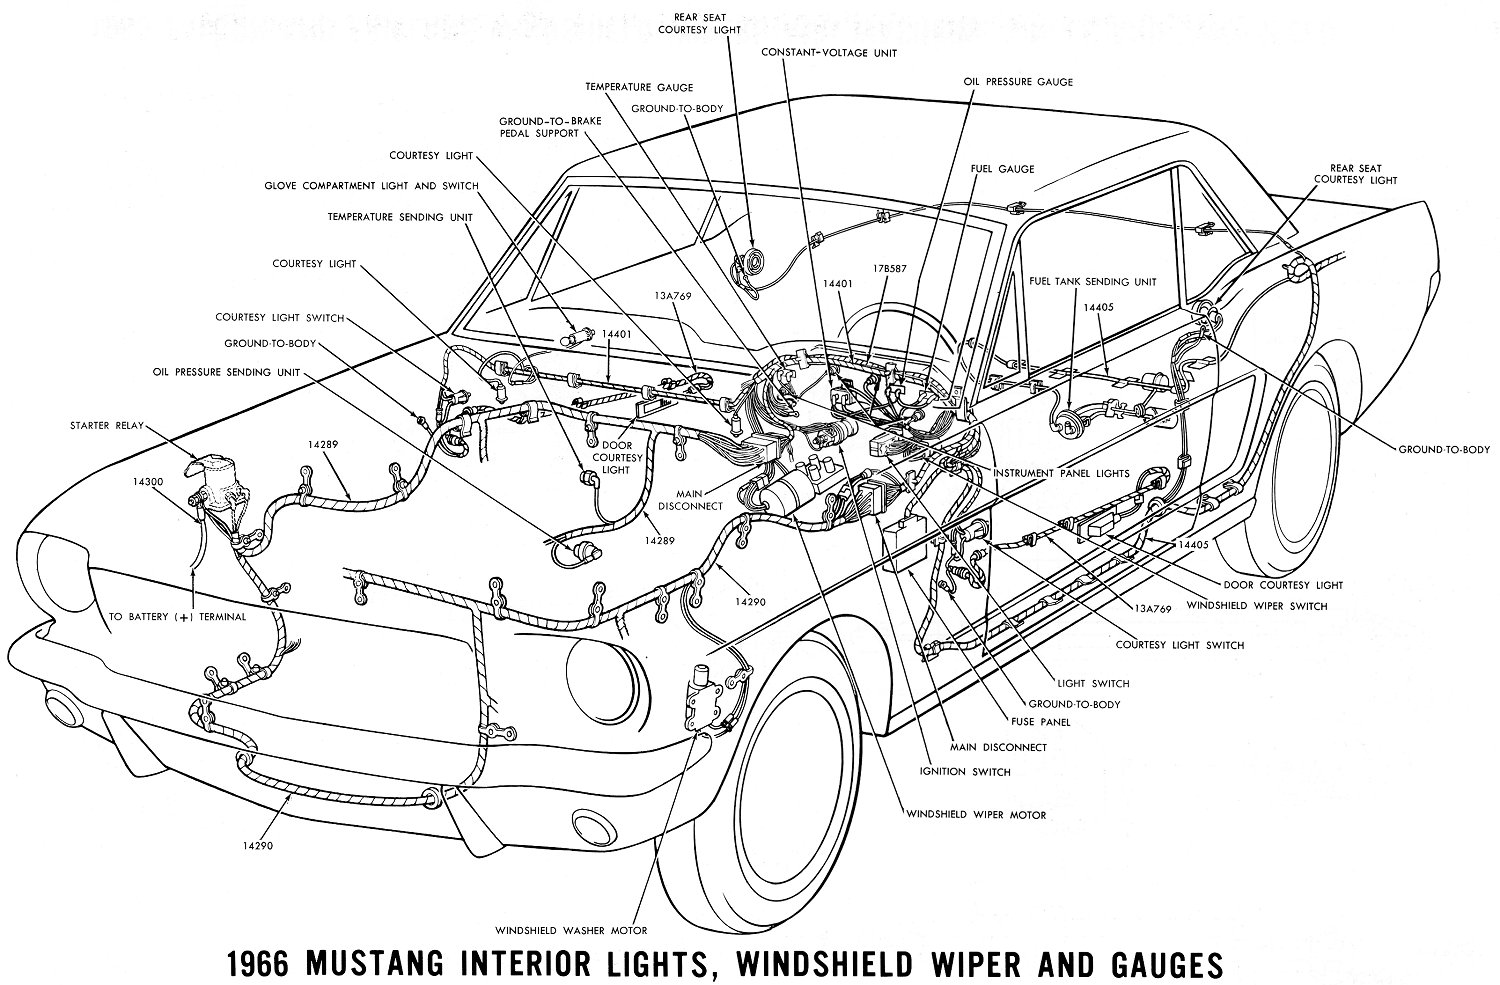 66inter 1966 mustang wiring diagrams average joe restoration 1966 mustang ignition switch wiring diagram at n-0.co